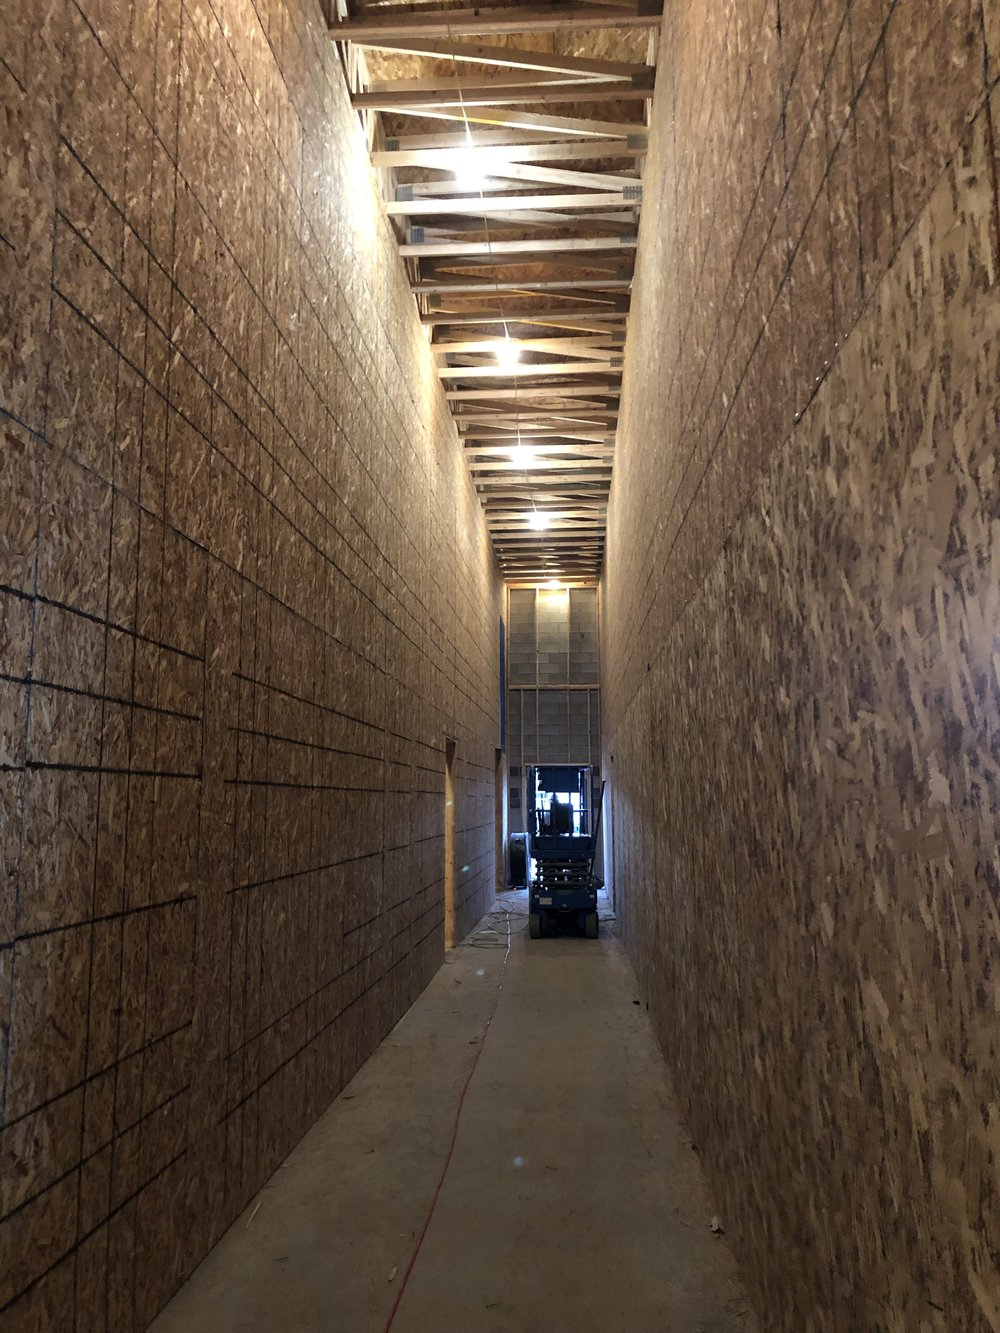 Today they sheeted most of the hallway between studios making it look massive.